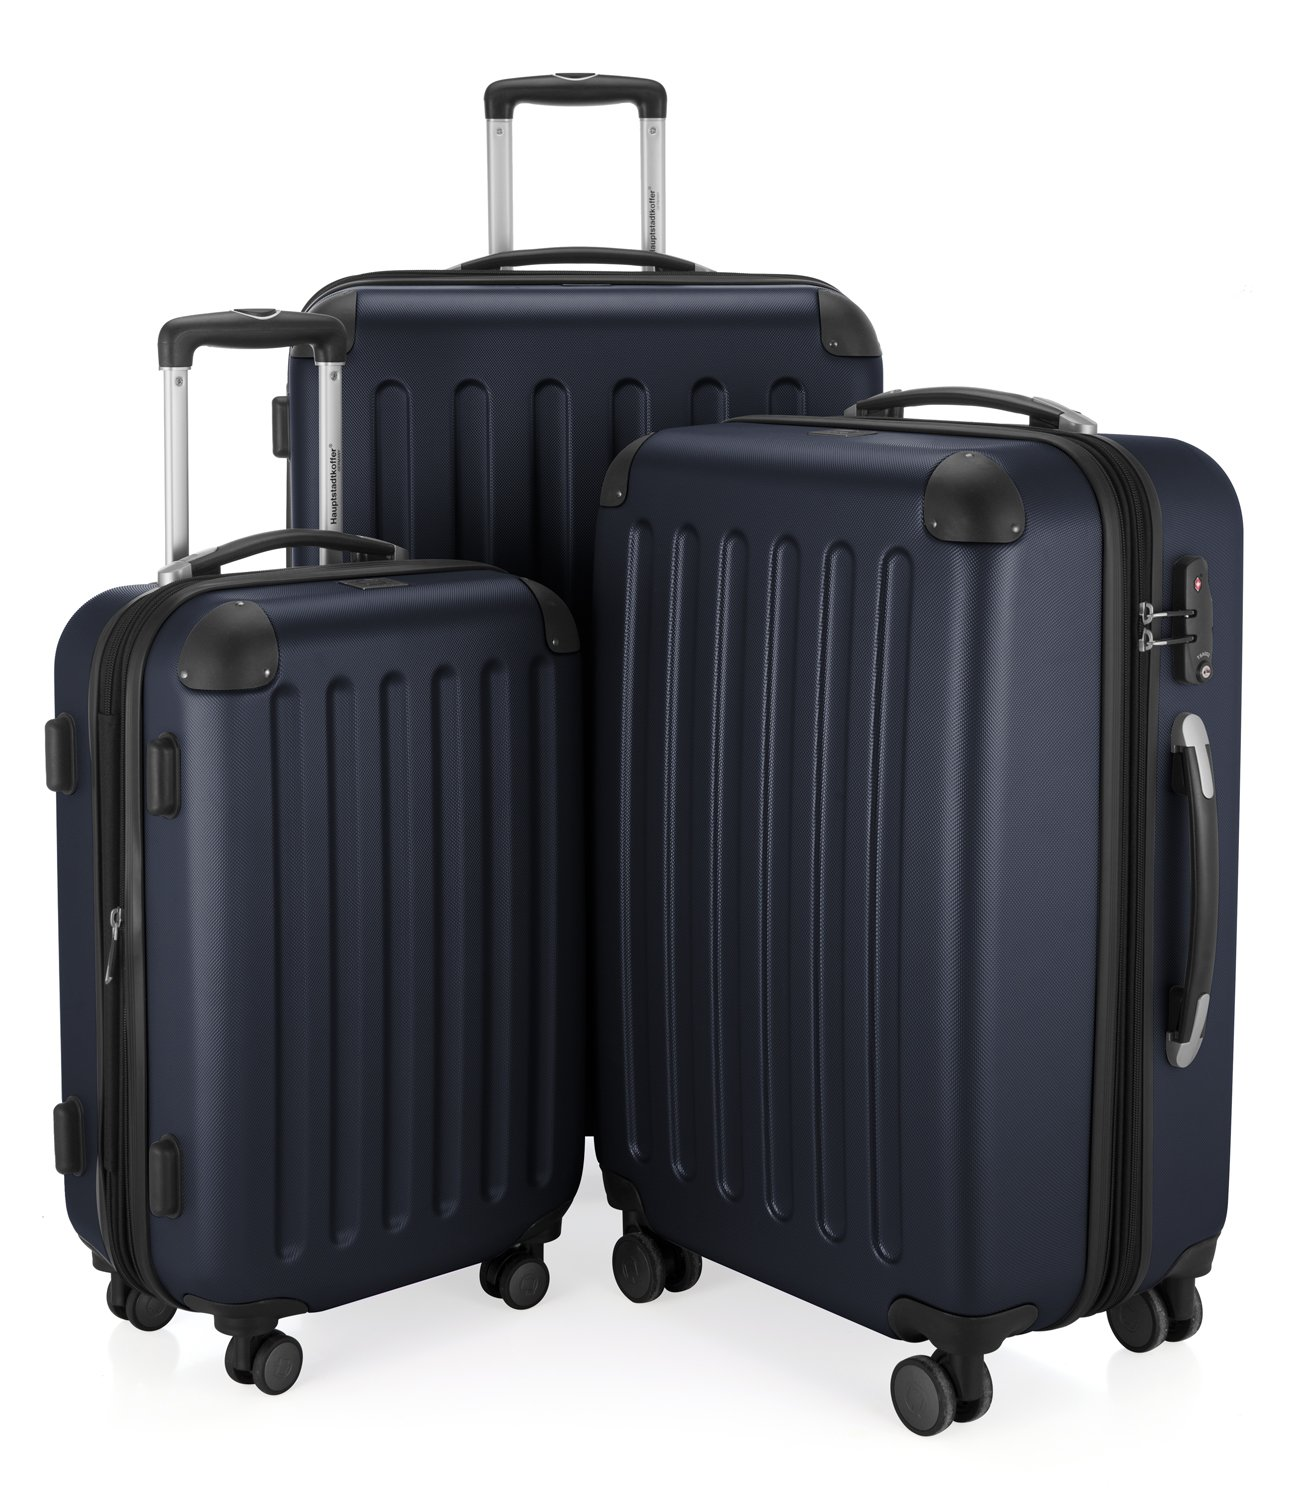 HAUPTSTADTKOFFER - Spree - Bagages Cabine à Main, Valise Rigide, Trolley, ABS, TSA, extra léger, extensible, 4 roues, 55 cm, 49 L, Graphite